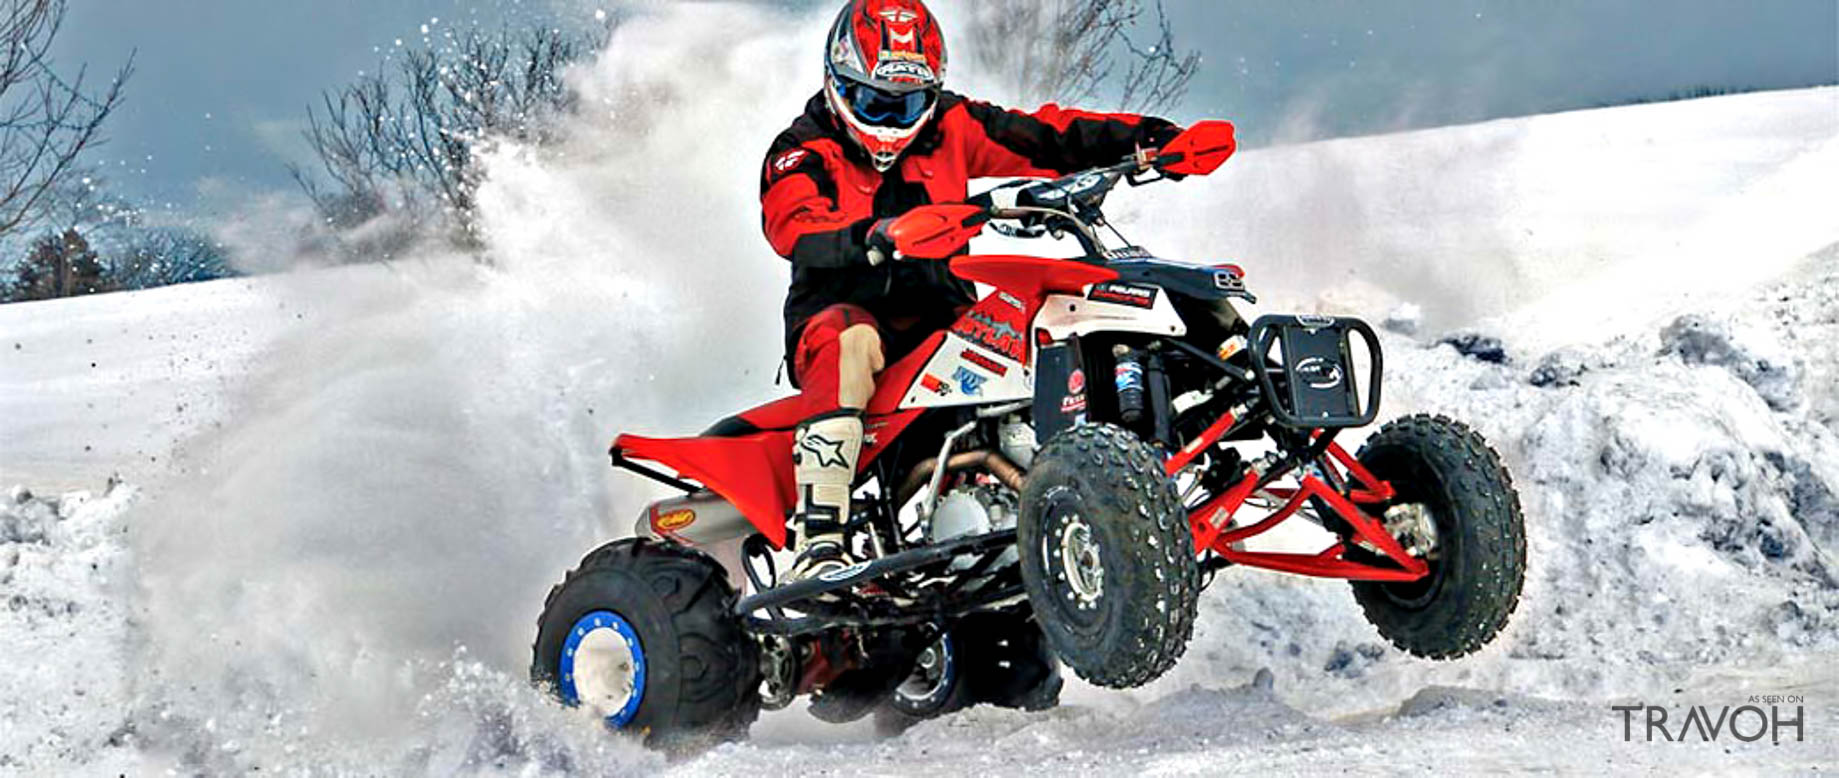 Quad Biking - The 10 Best Off-Piste Winter Activities in Courchevel, France